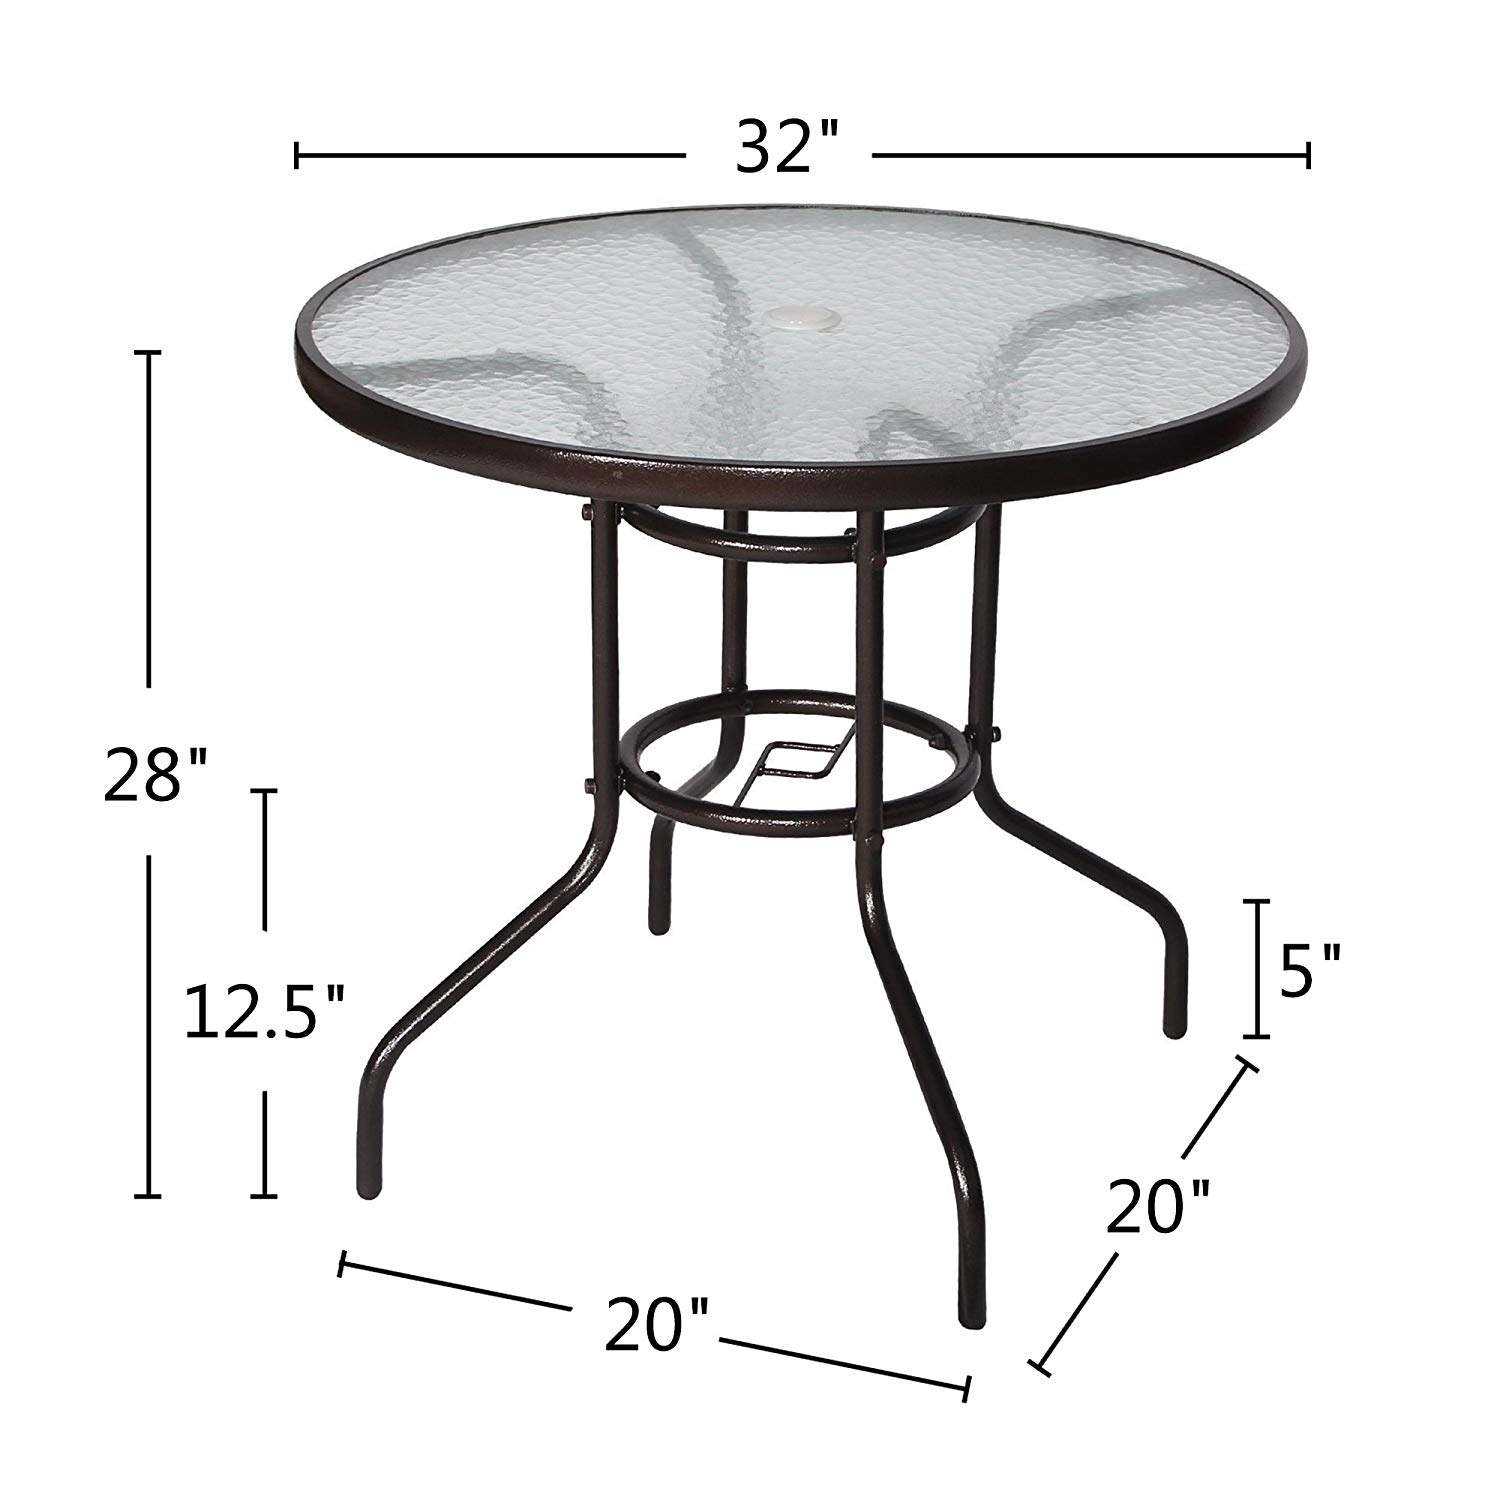 cloud mountain outdoor dining table patio tempered umbrella accent glass bistro top stand round deck garden home furniture gold runner velvet antique living room tables lift